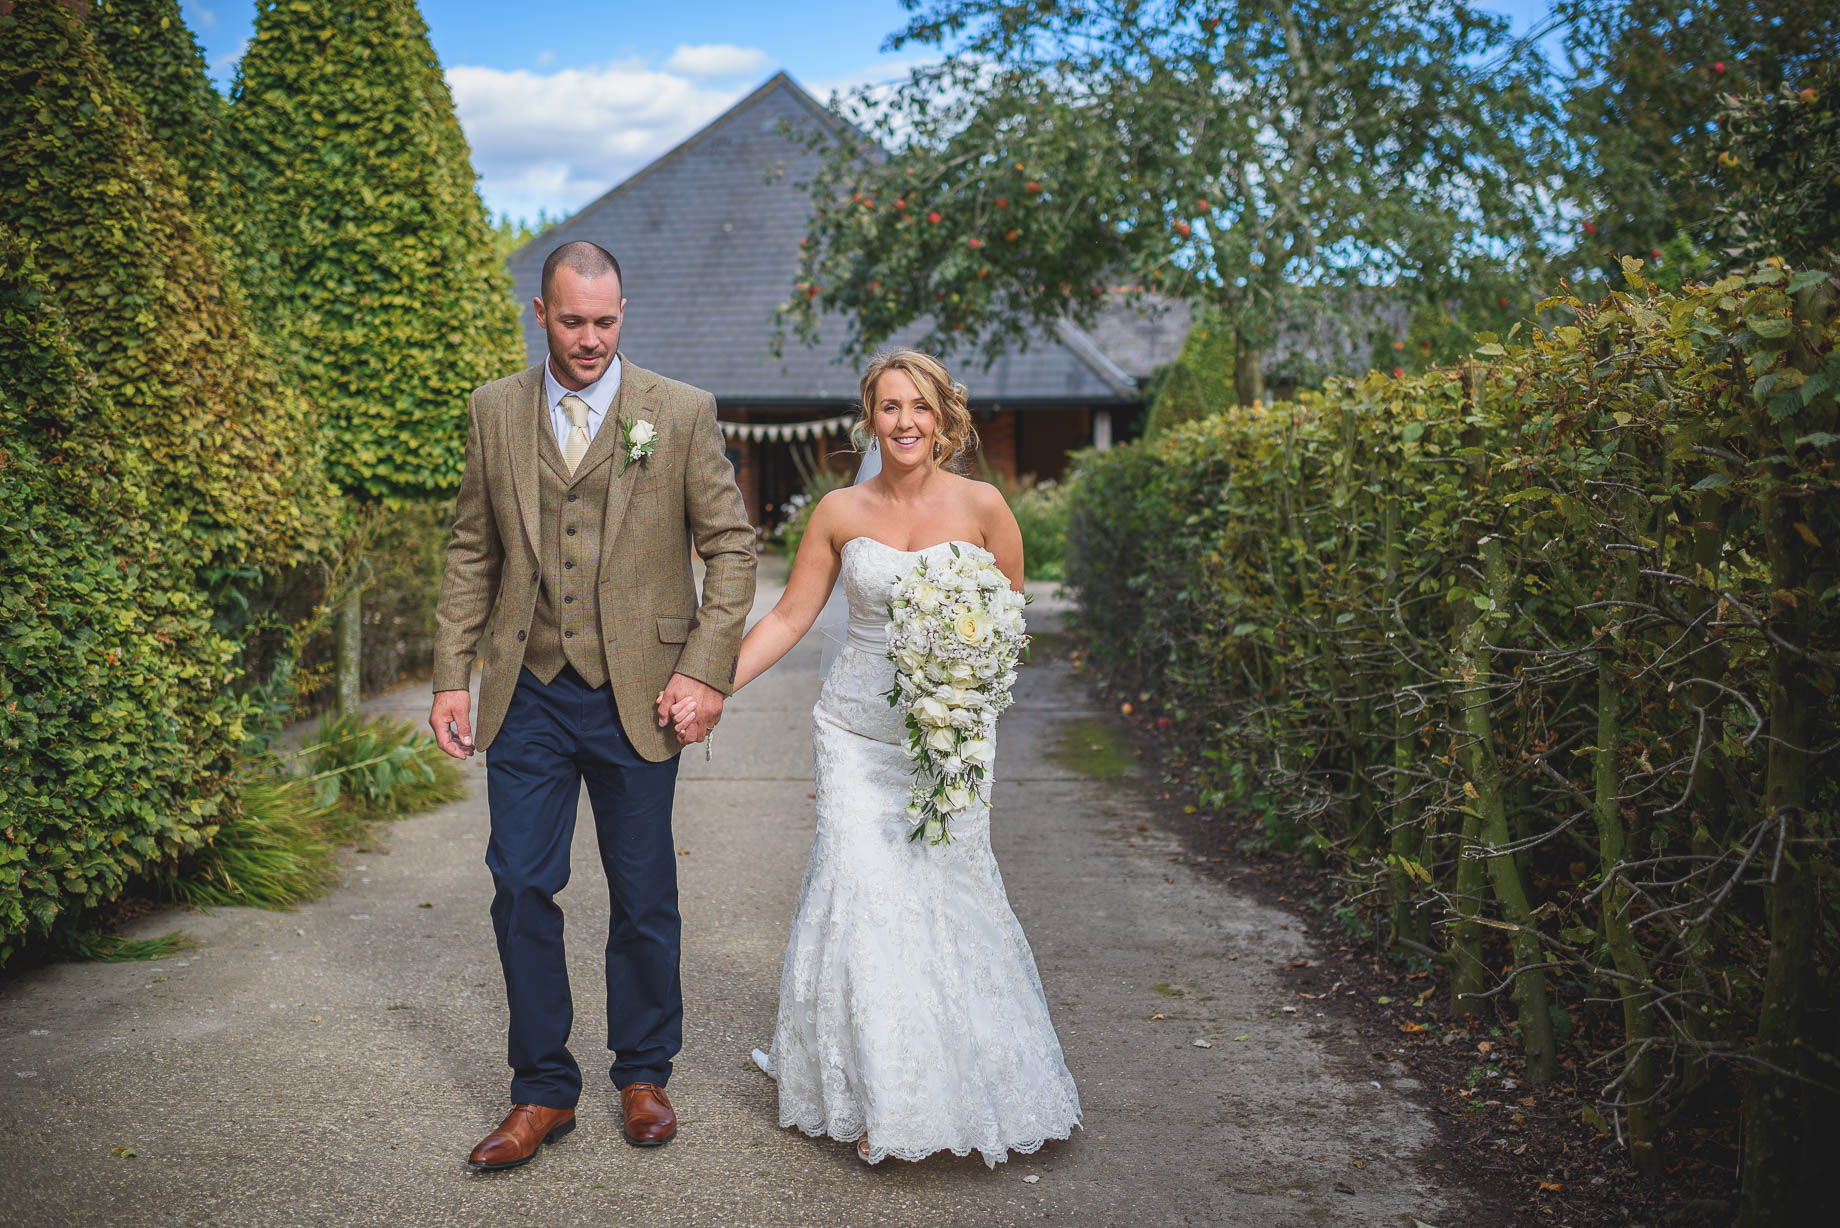 Bury Court Barn wedding photography - Guy Collier - Kate and Russ (103 of 187)